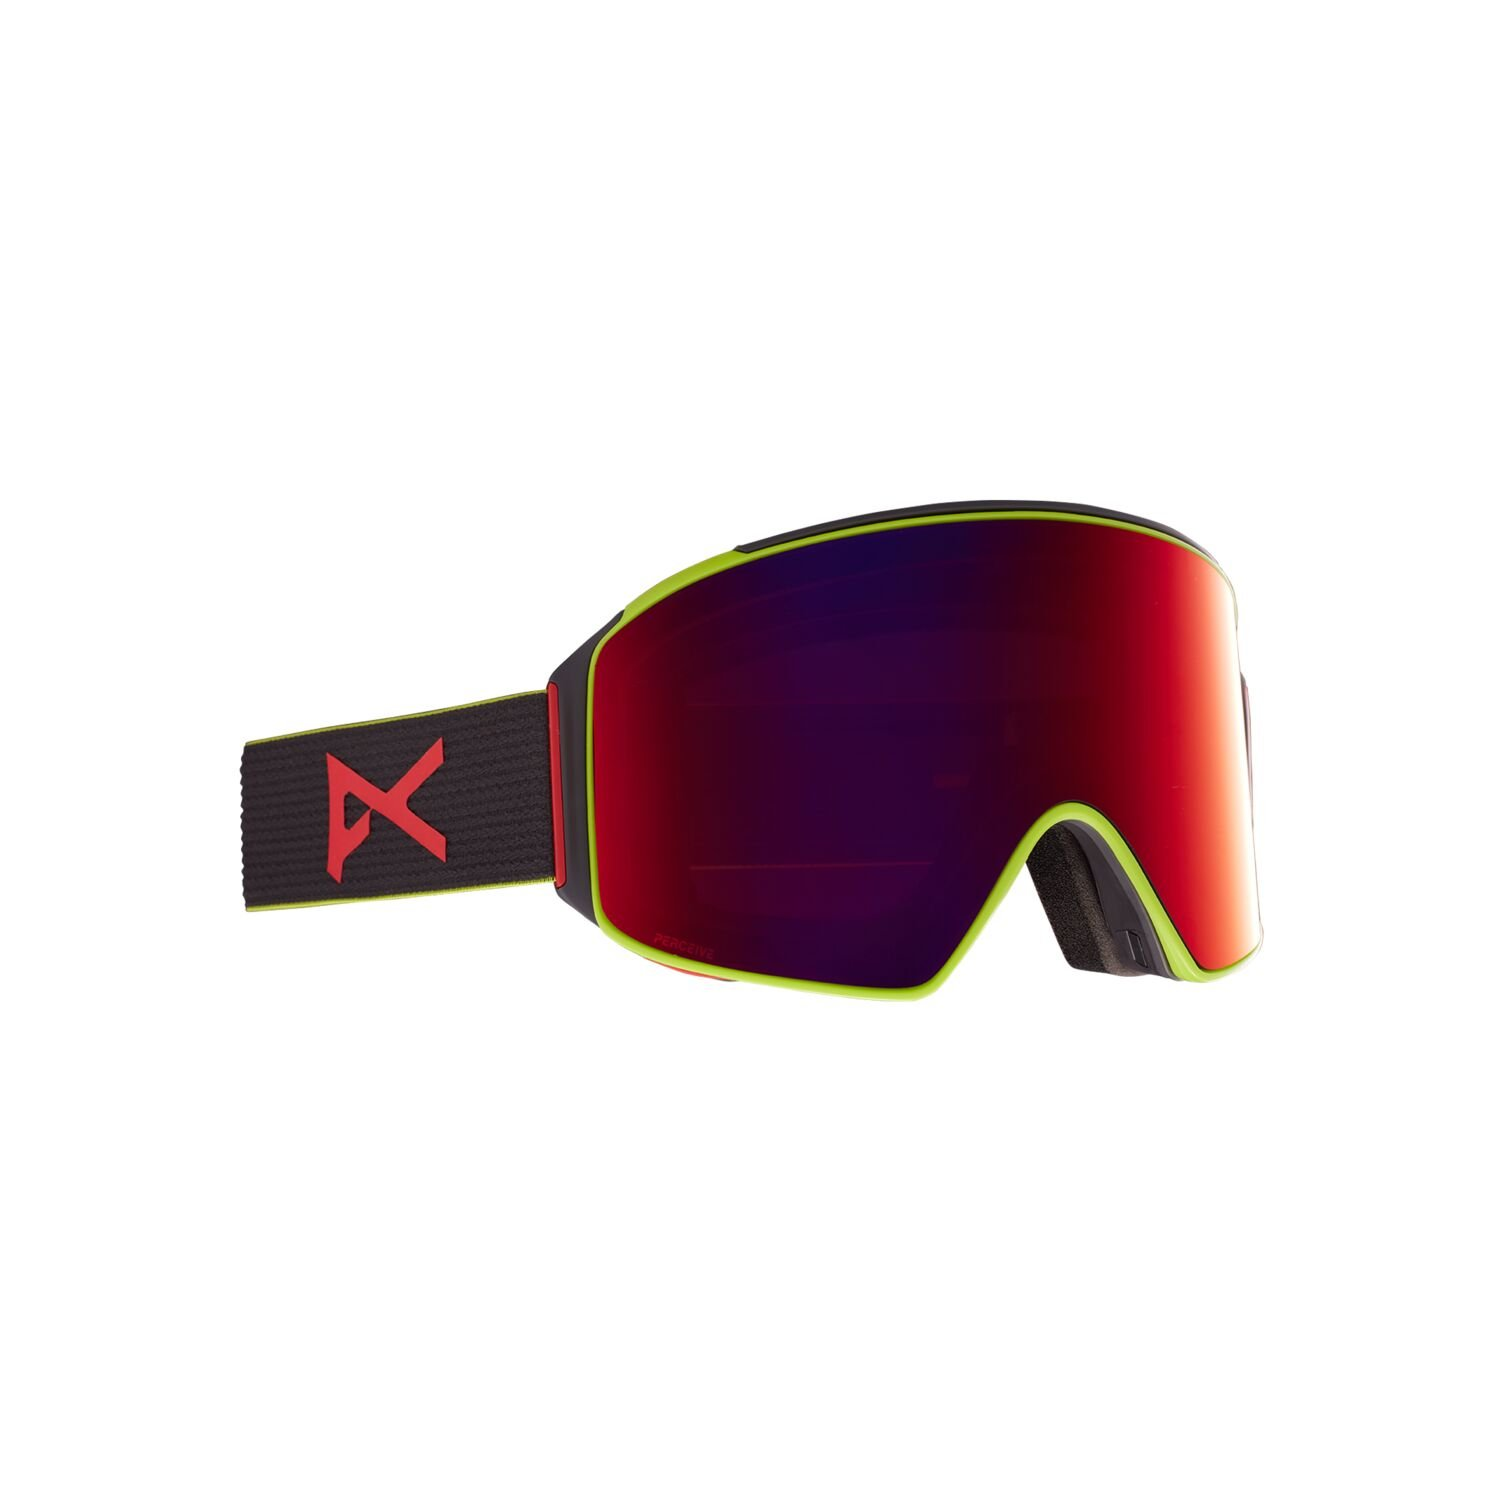 Anon M4 Cylindrical Snowboard Goggle (Multiple Color Options)